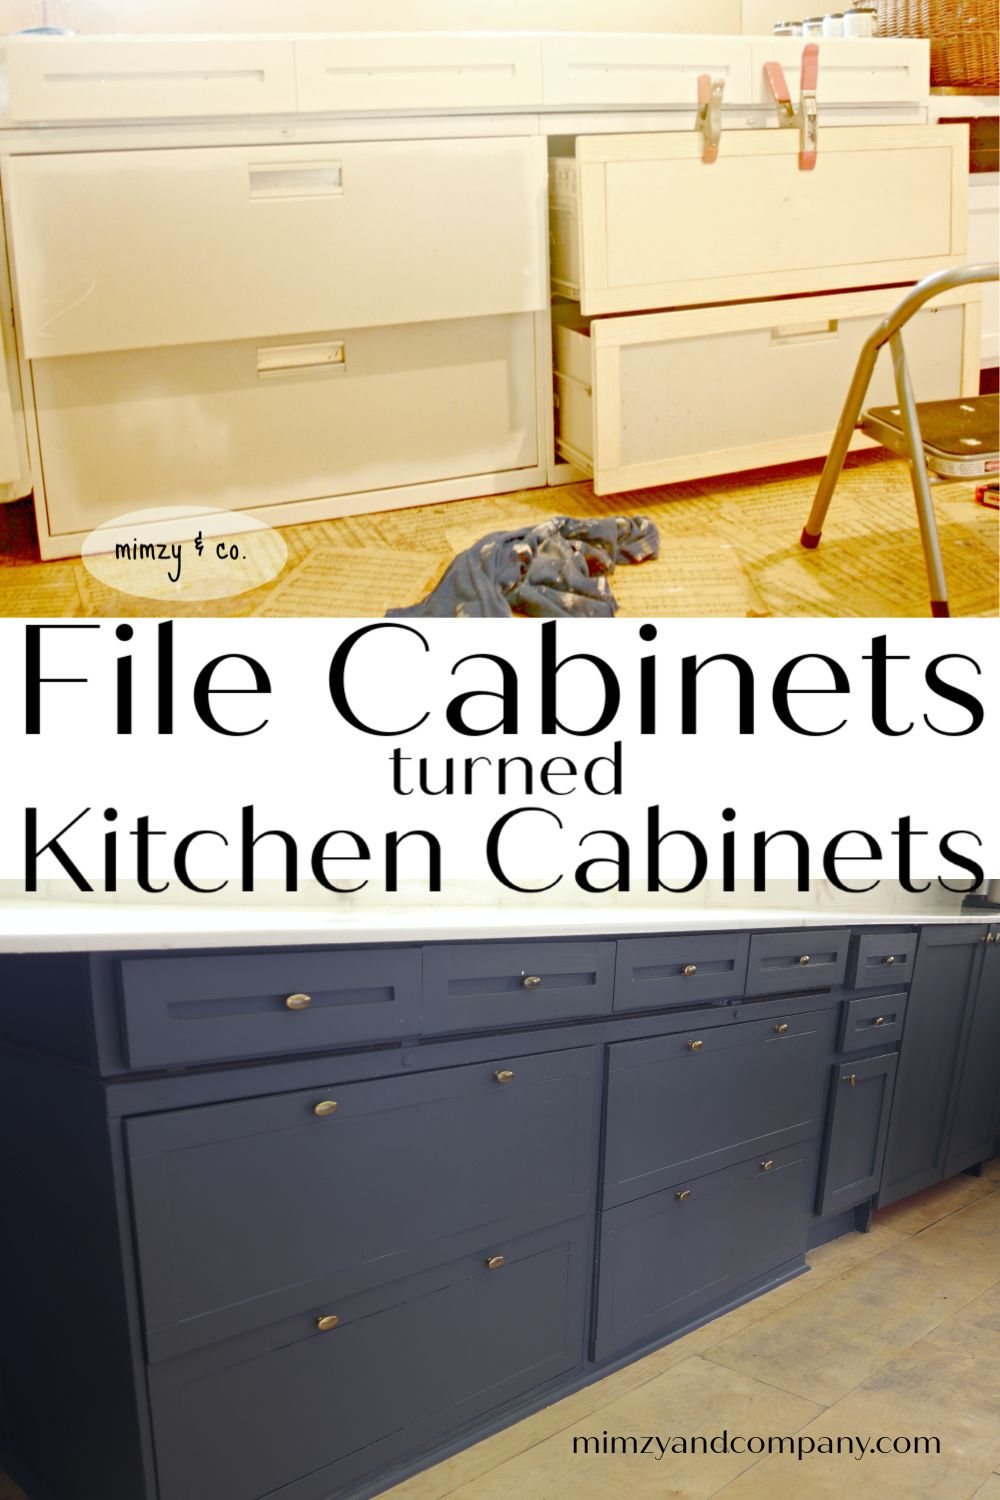 10 Kitchen Cabinet Drawer Organizers You Can Build Yourself Simple Kitchen Cabinets Diy Kitchen Storage Kitchen Cabinets Storage Organizers